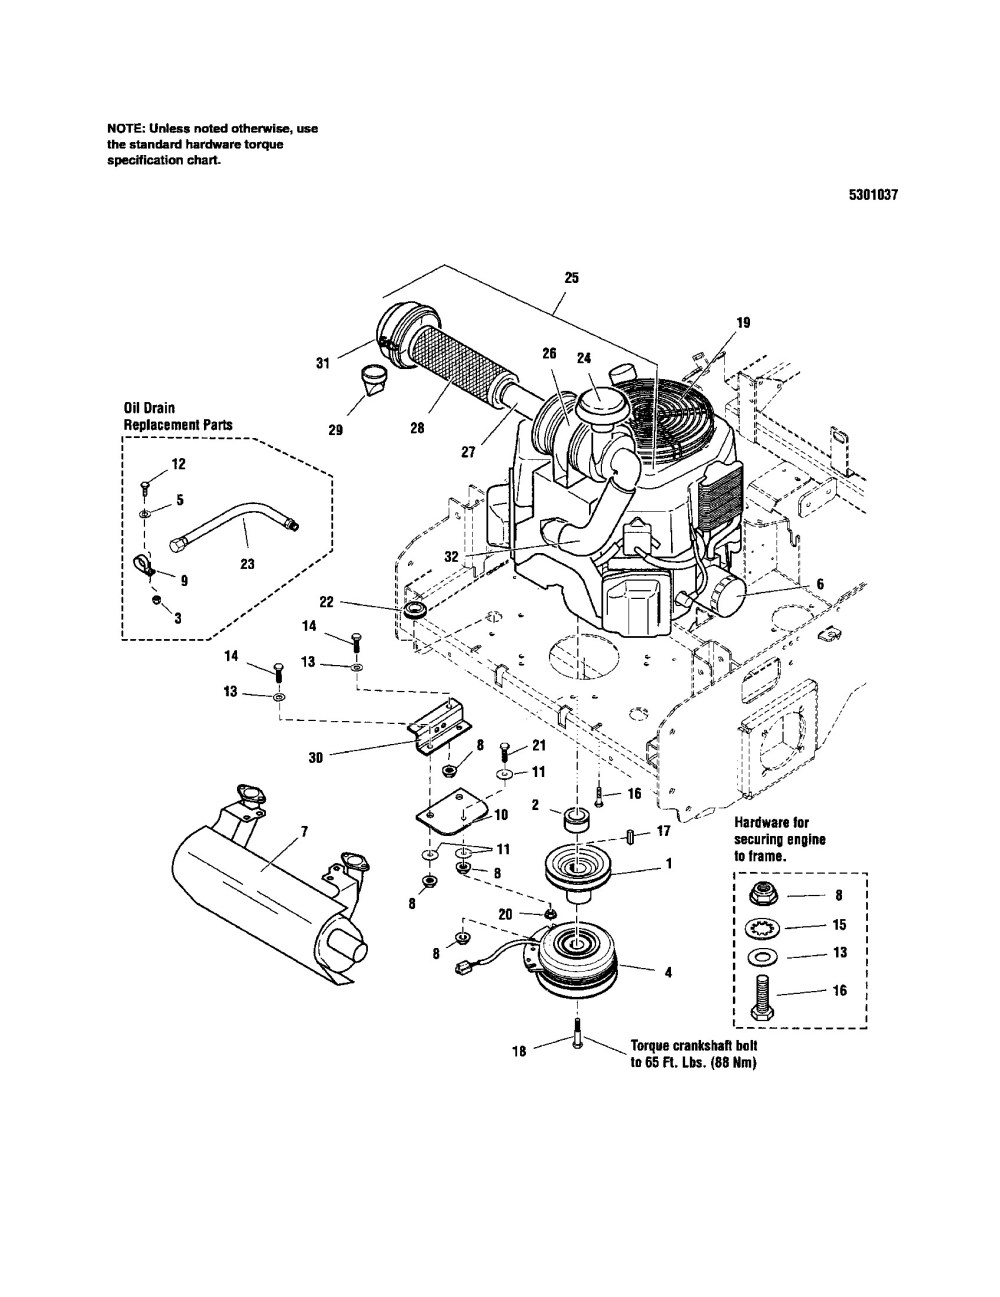 medium resolution of kohler ch15 5 wiring diagram wiring library 23 hp kohler engine diagram introduction to electrical wiring